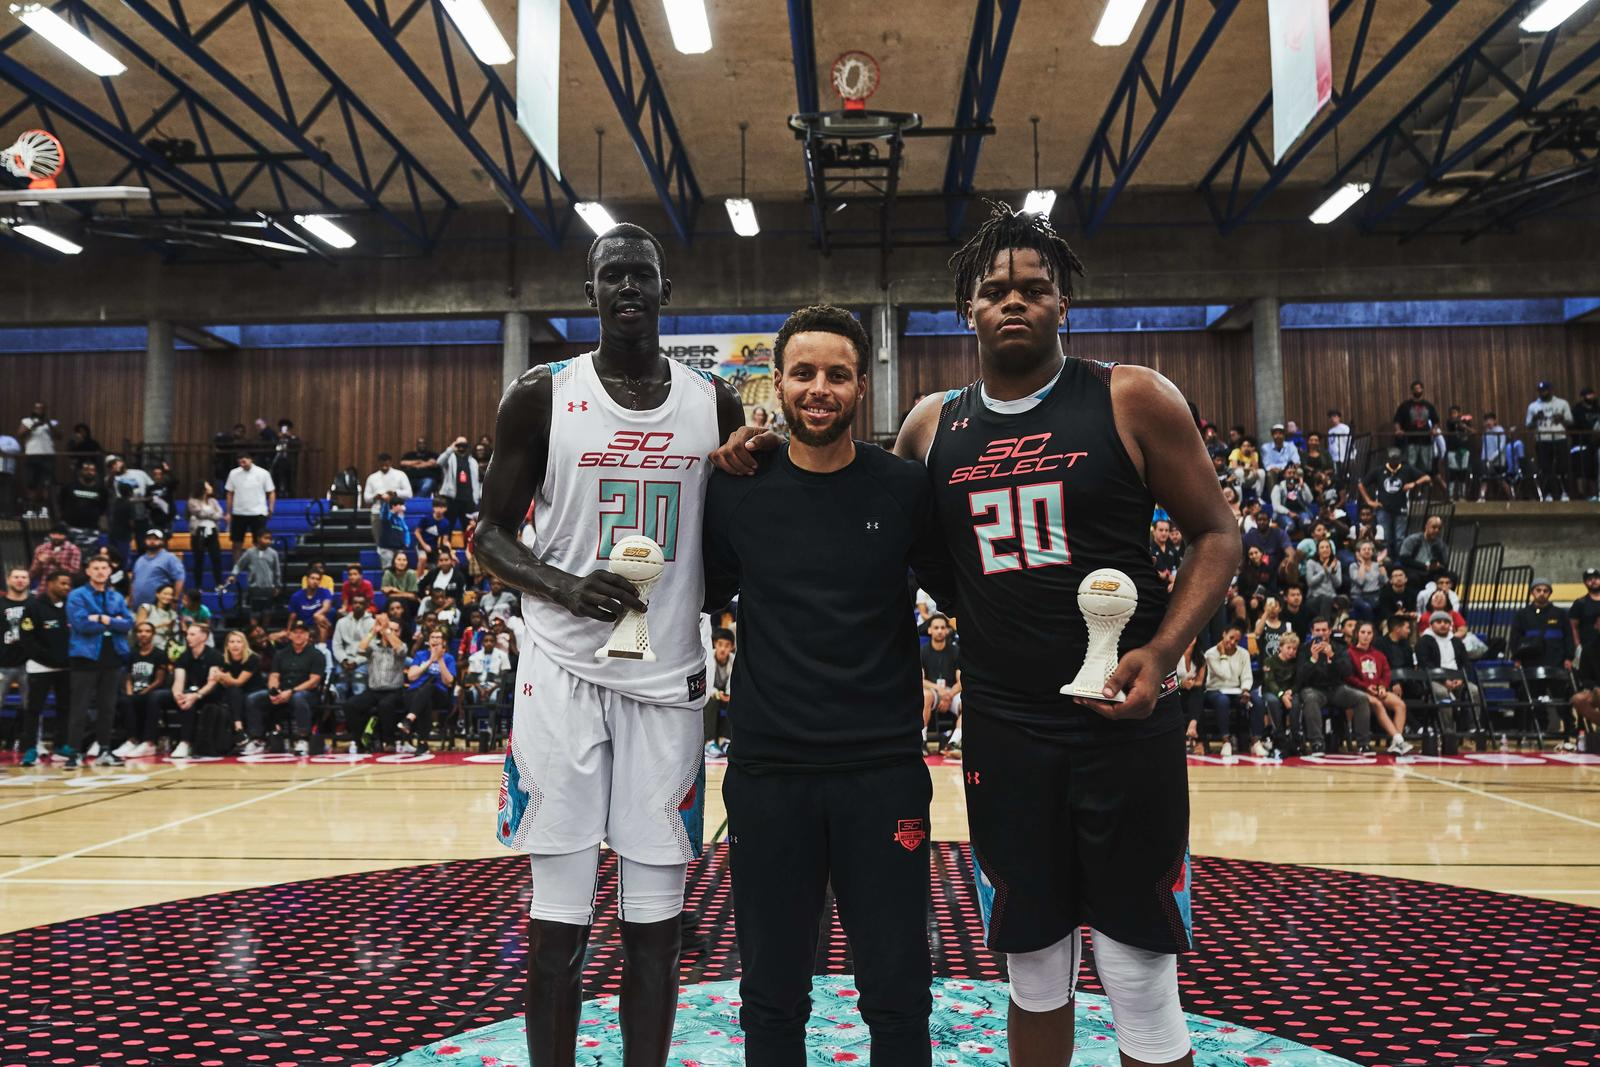 Makur Maker and Eddie Lampkin took home game MVP awards, and Jalen Suggs took home Most Outstanding Player honors for the entire camp.